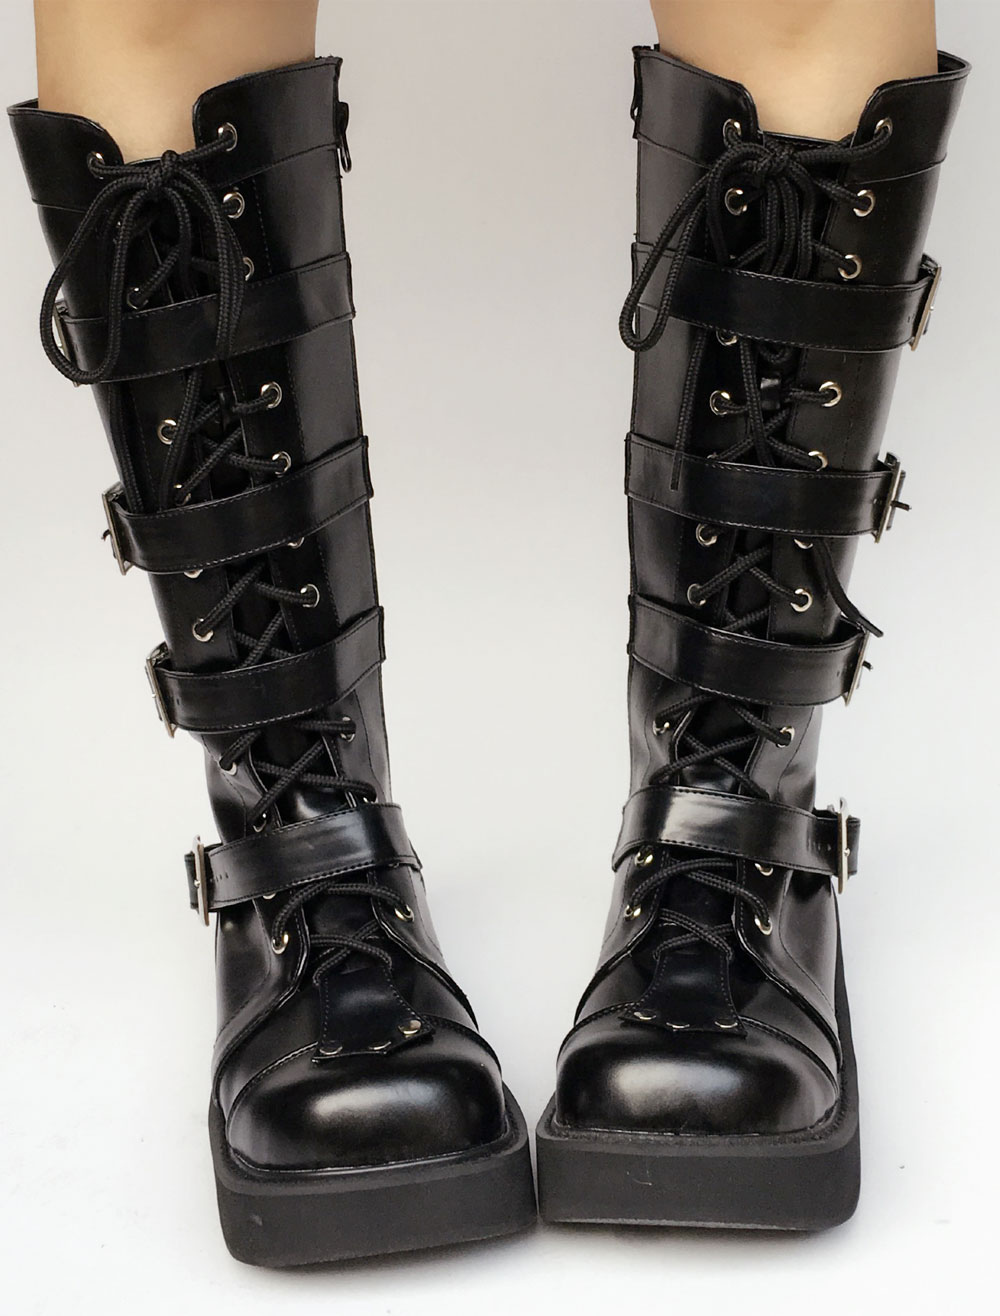 Buy Black Lolita Boots Wedge Platform Round Toe Buckle Lace Up Lolita Short Boots for $114.99 in Milanoo store